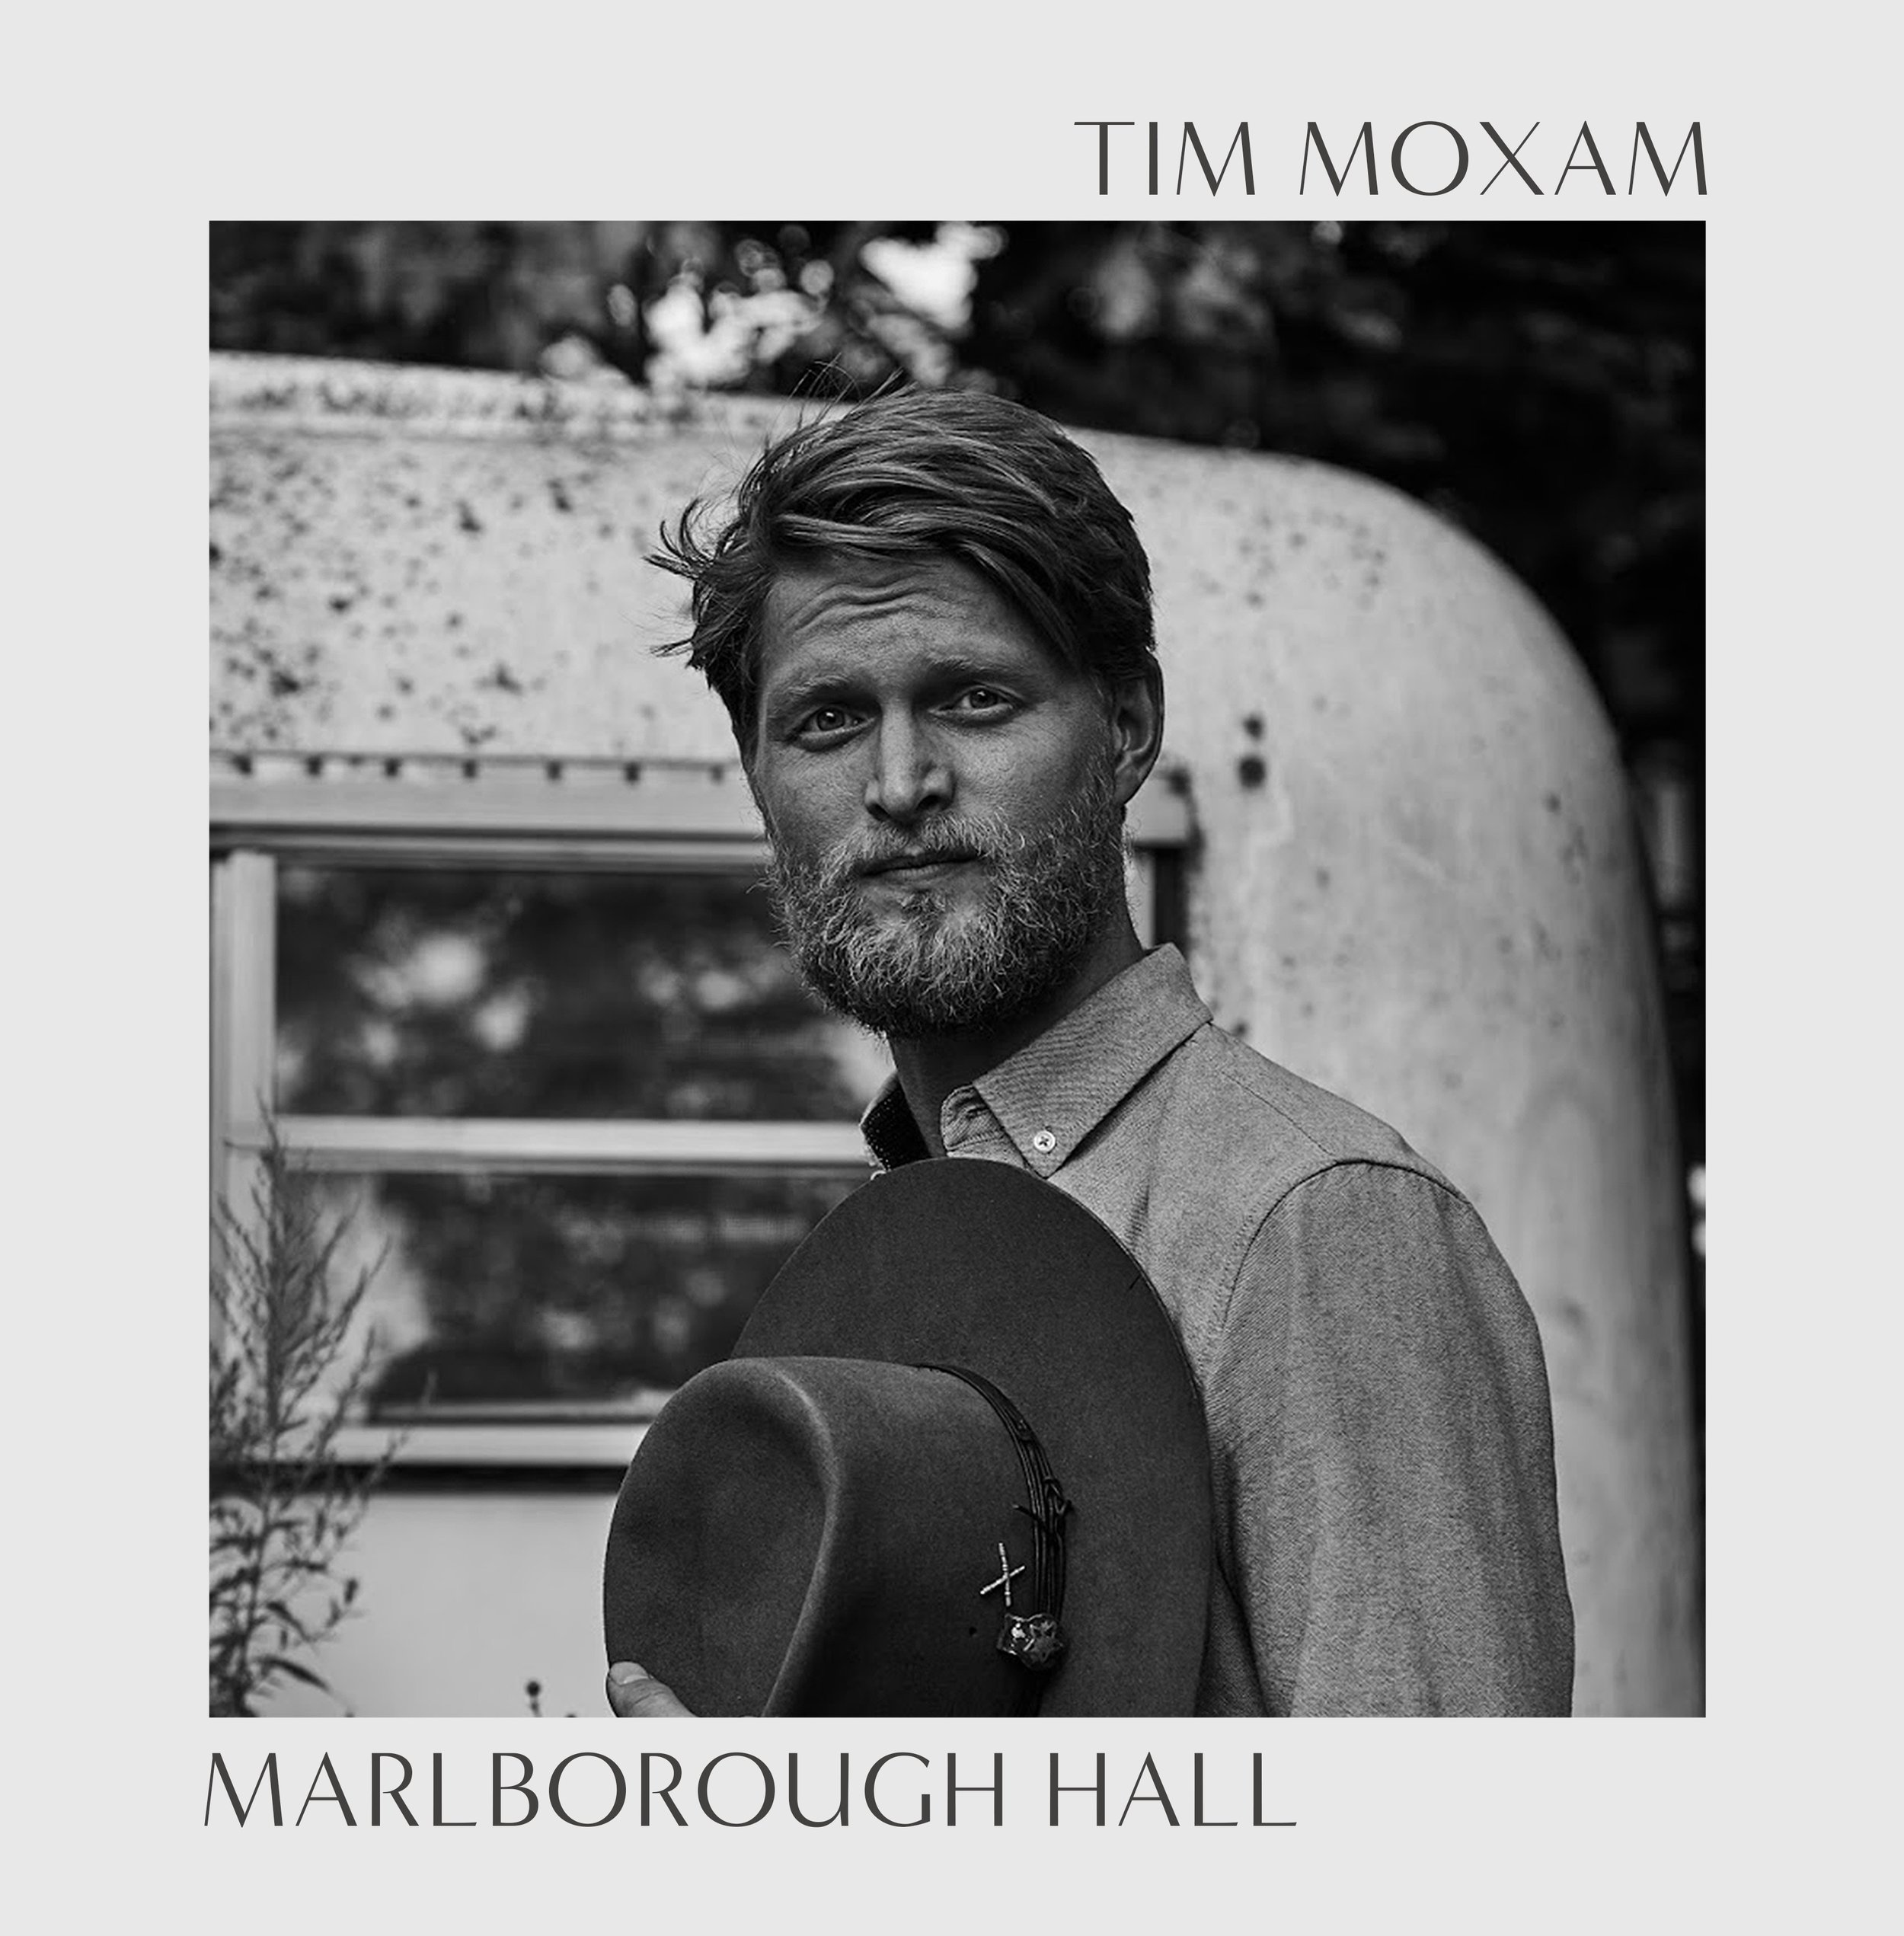 Tim Moxam_Marlborough Hall_Album Cover Art.jpeg